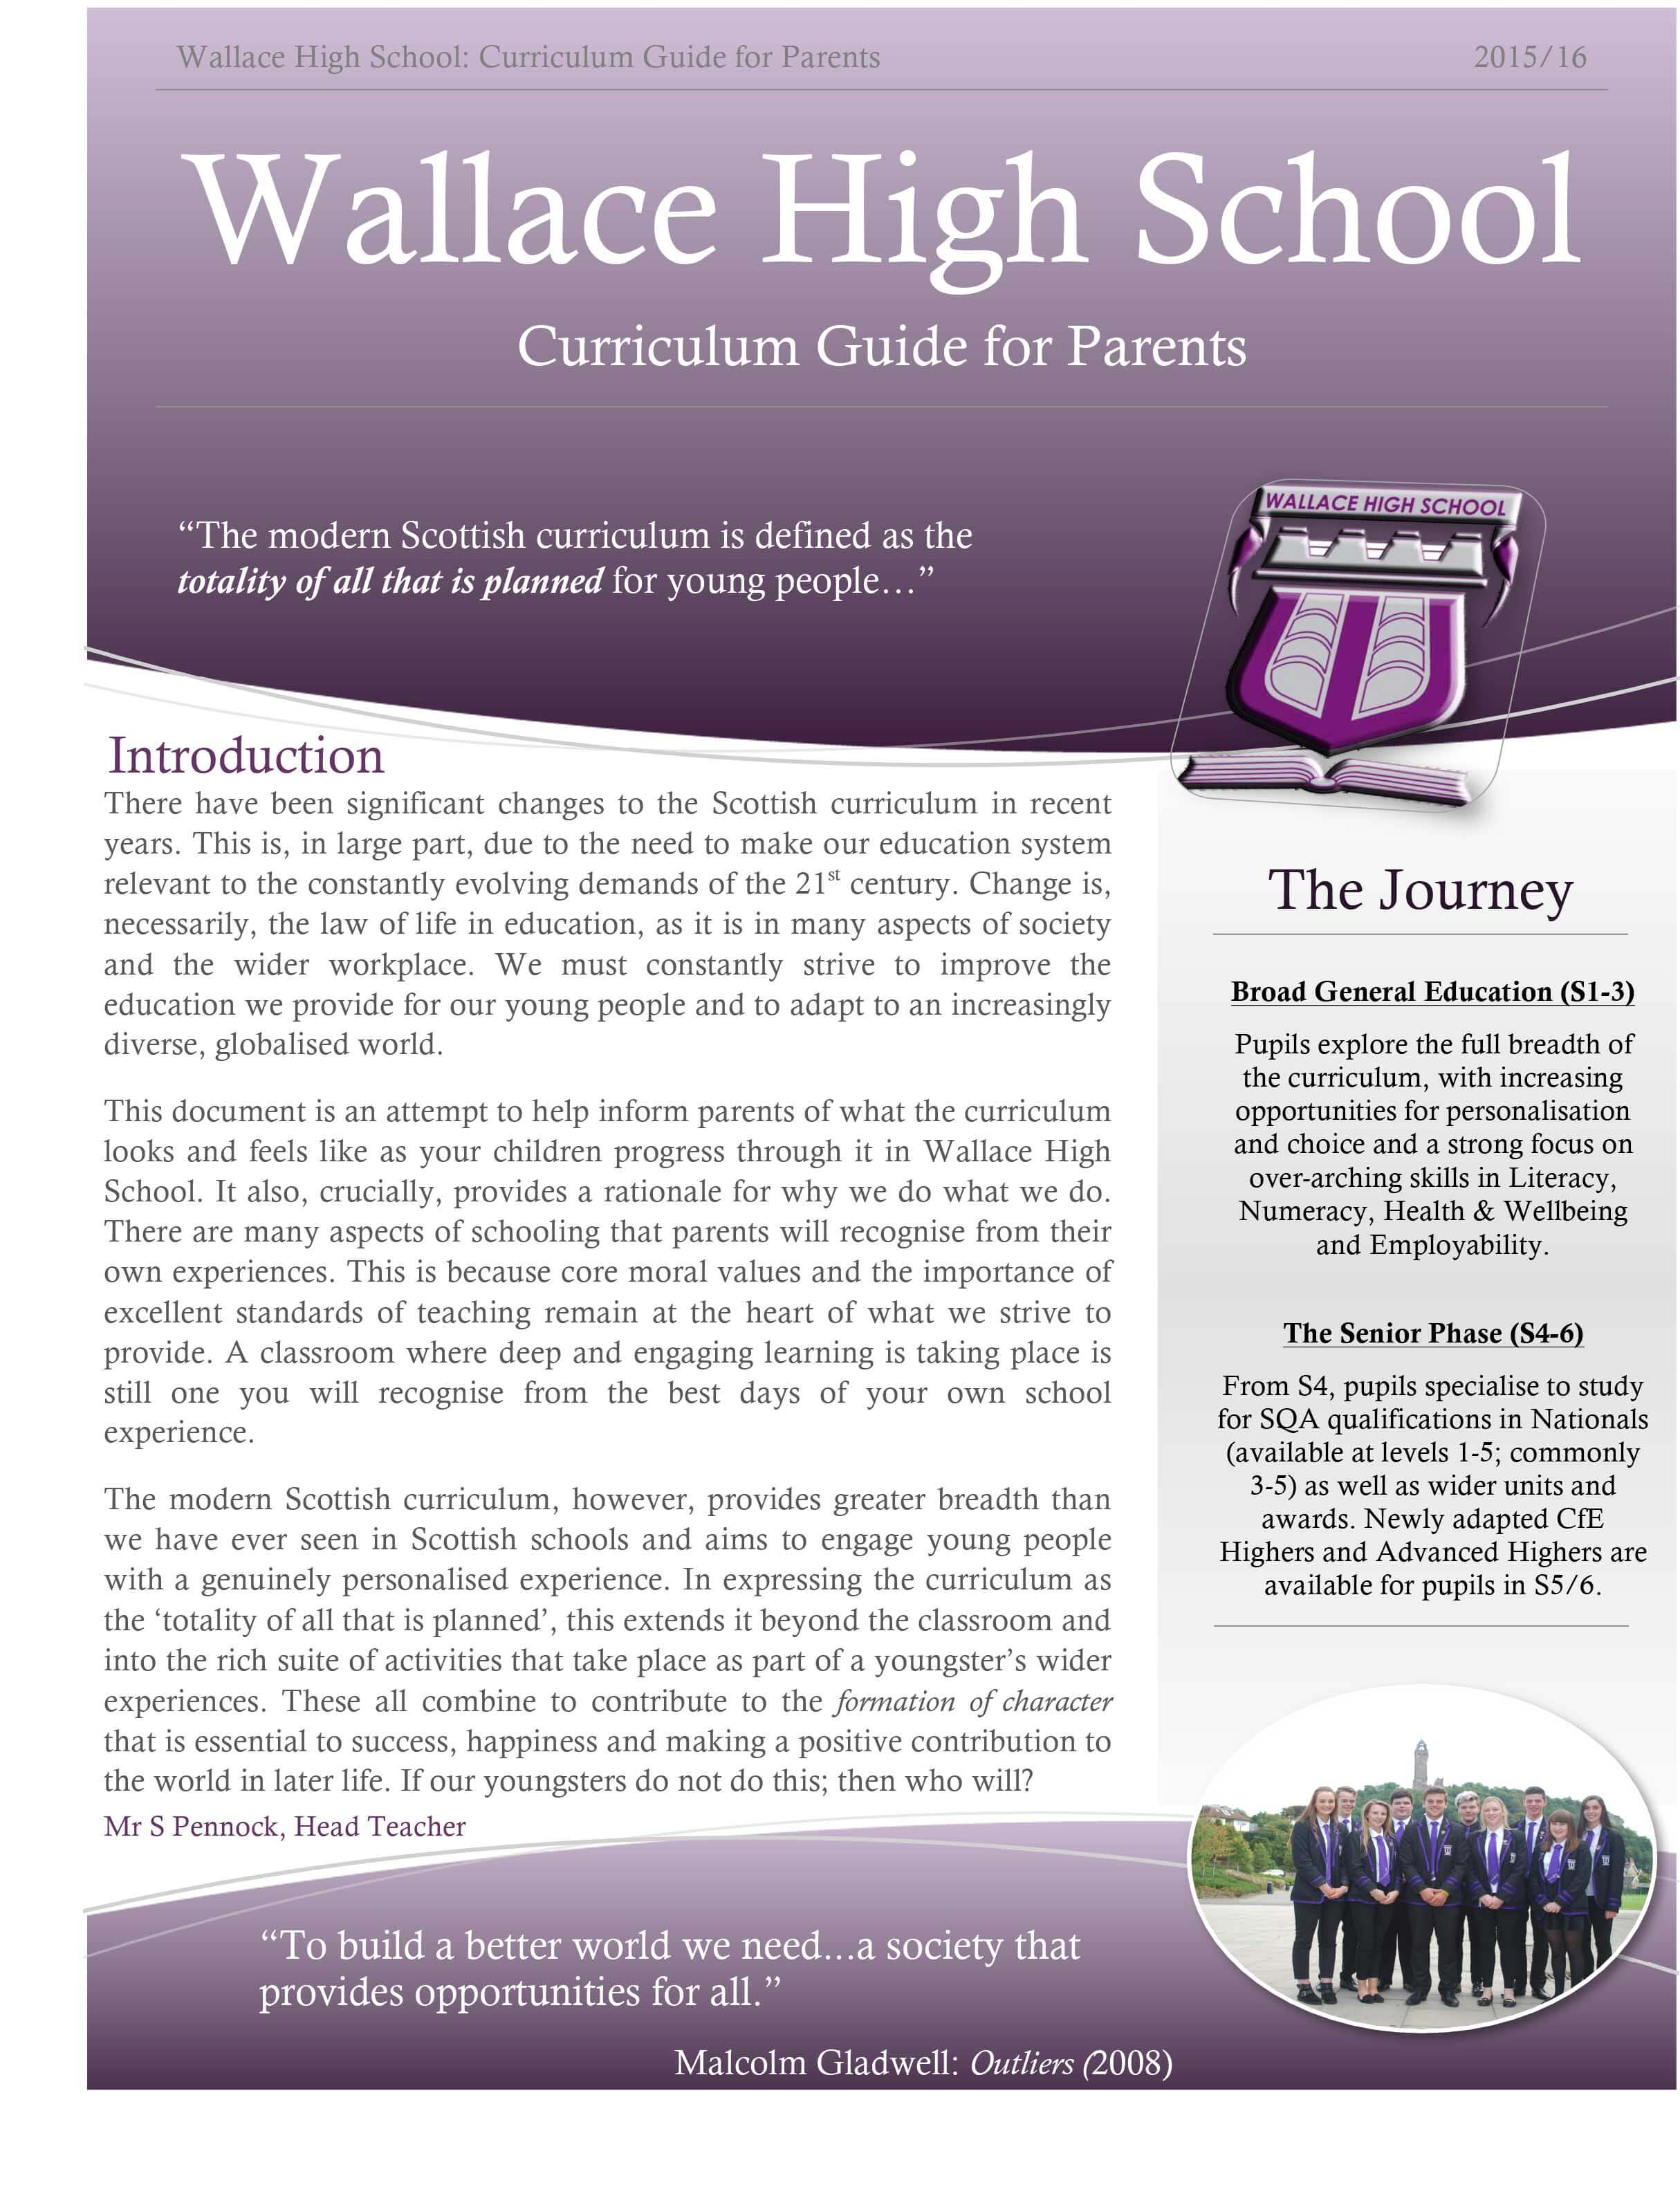 curriculum guide for parents - curriculum